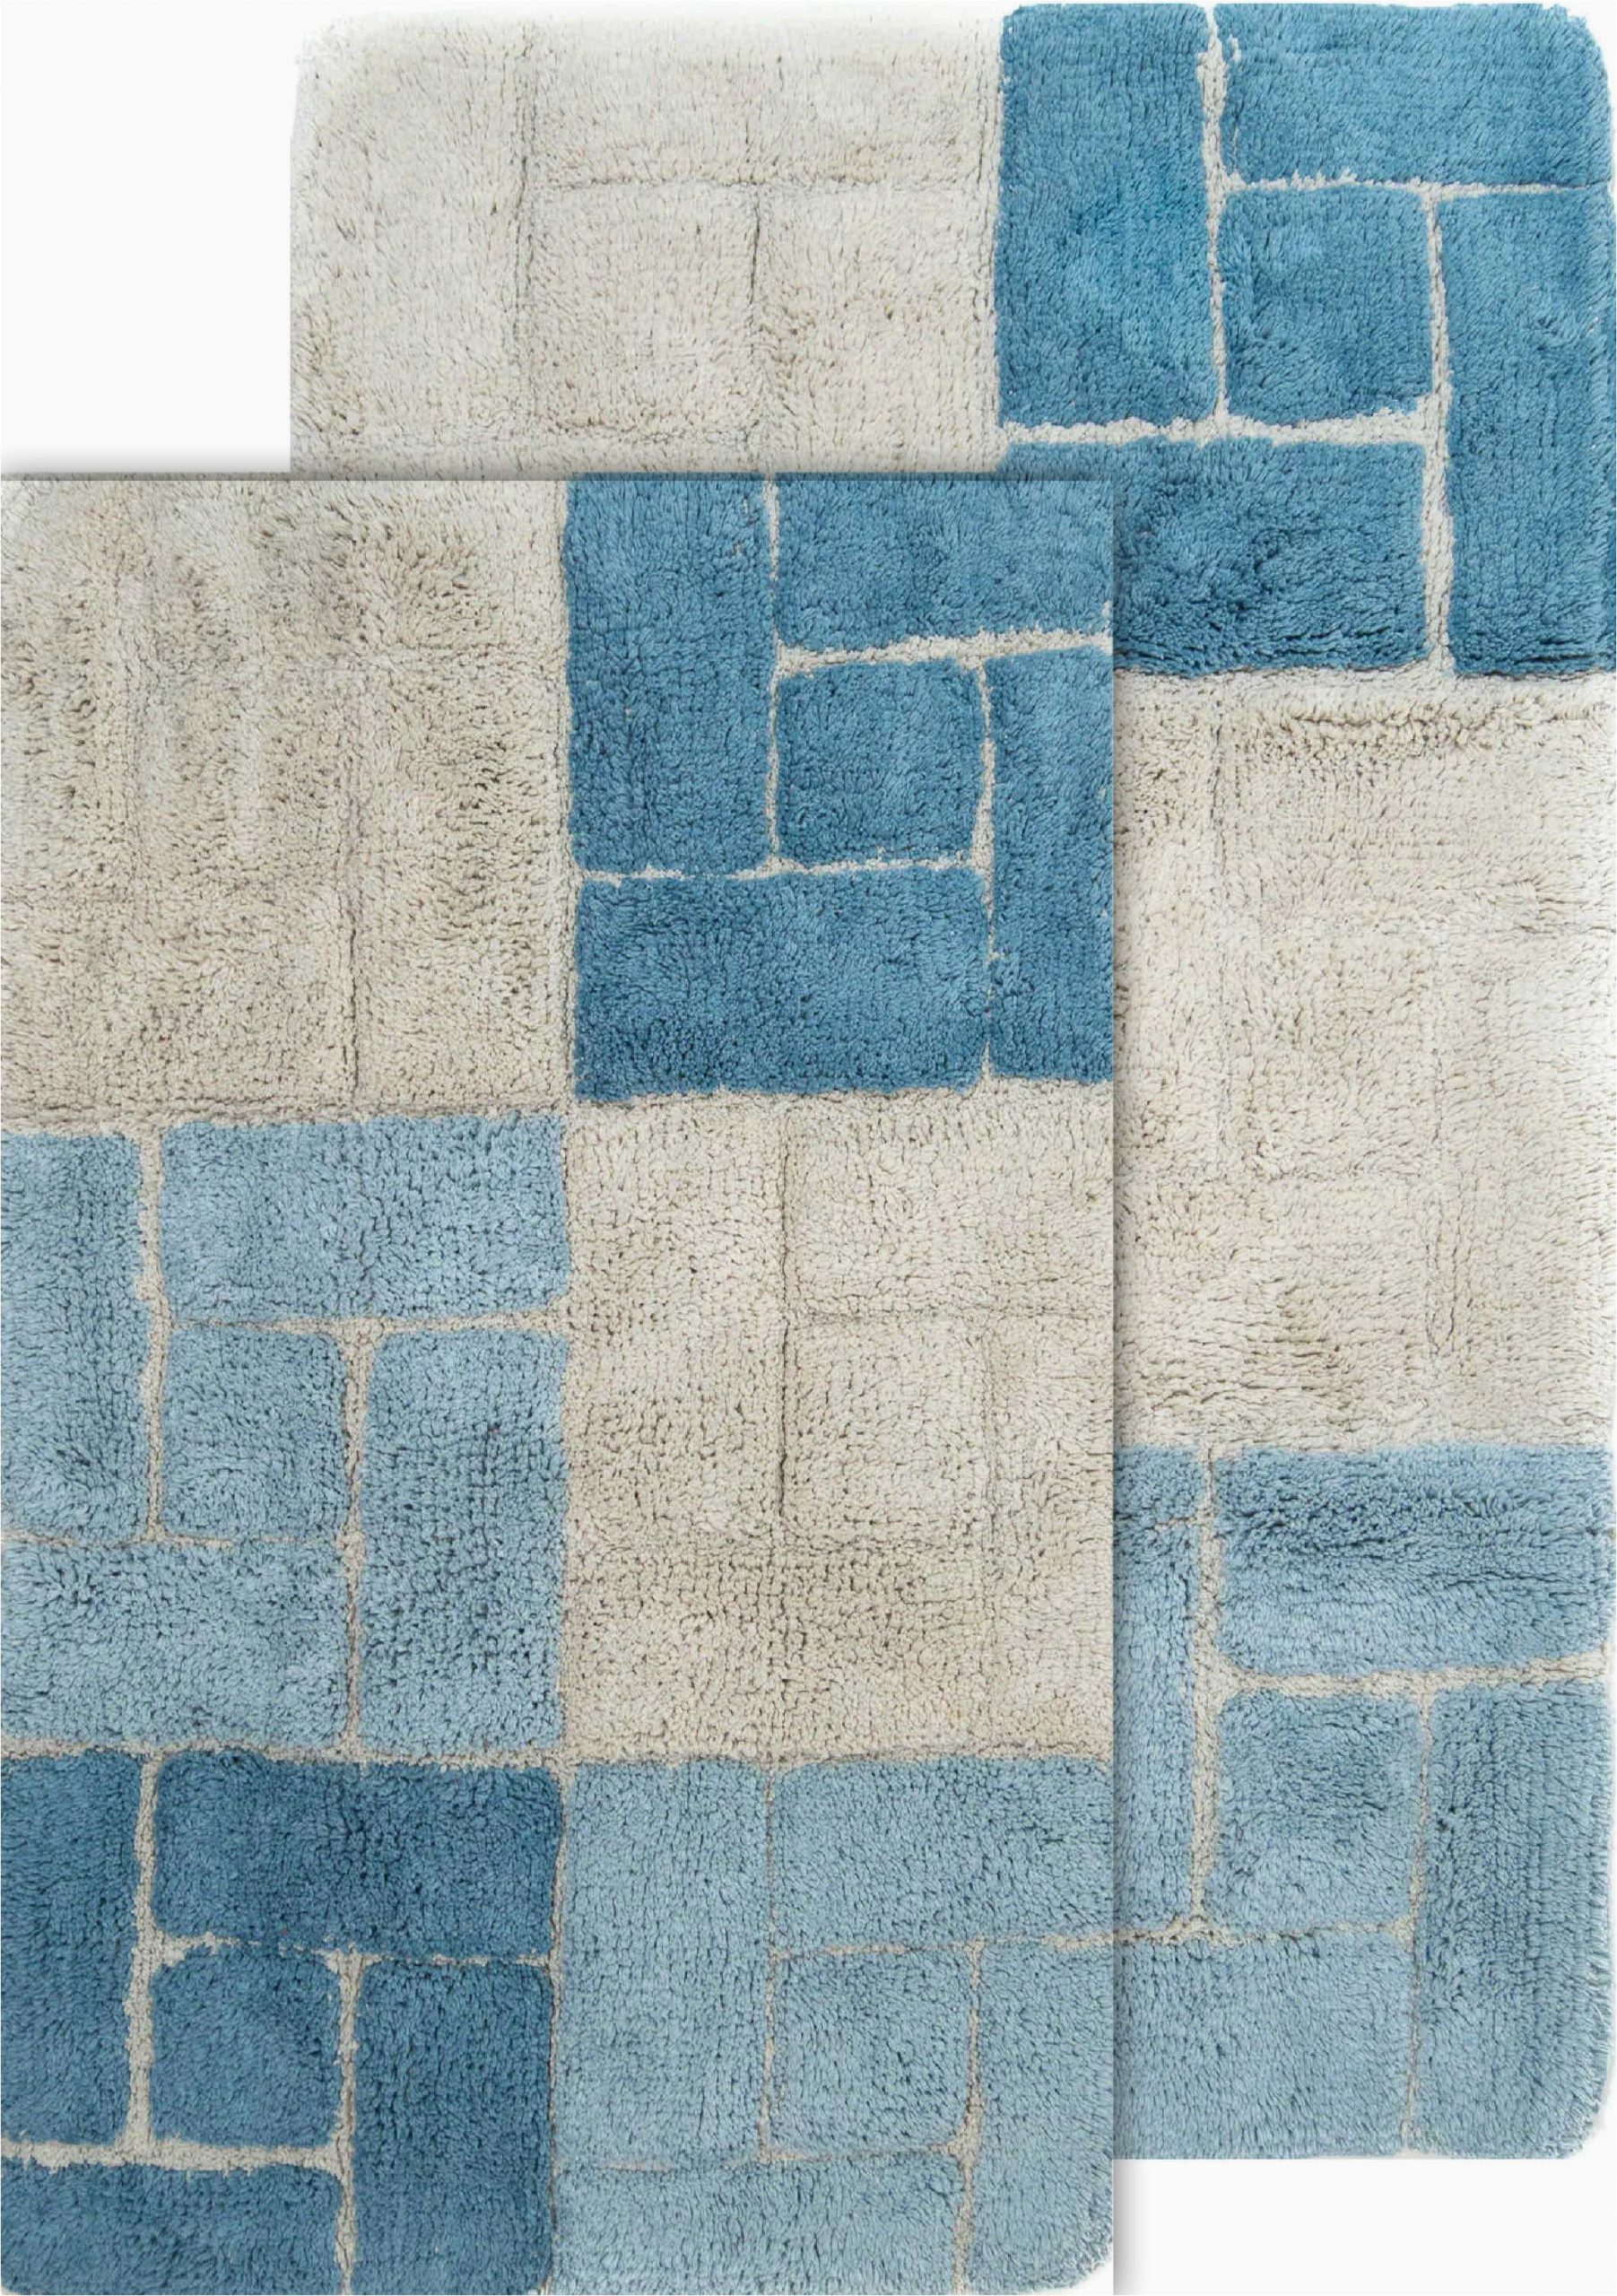 "40 X 24 Bath Rug Chesapeake Berkeley 2pc Aquamarine Bath Rug Set 21""x34"" & 24""x 40"" Walmart"